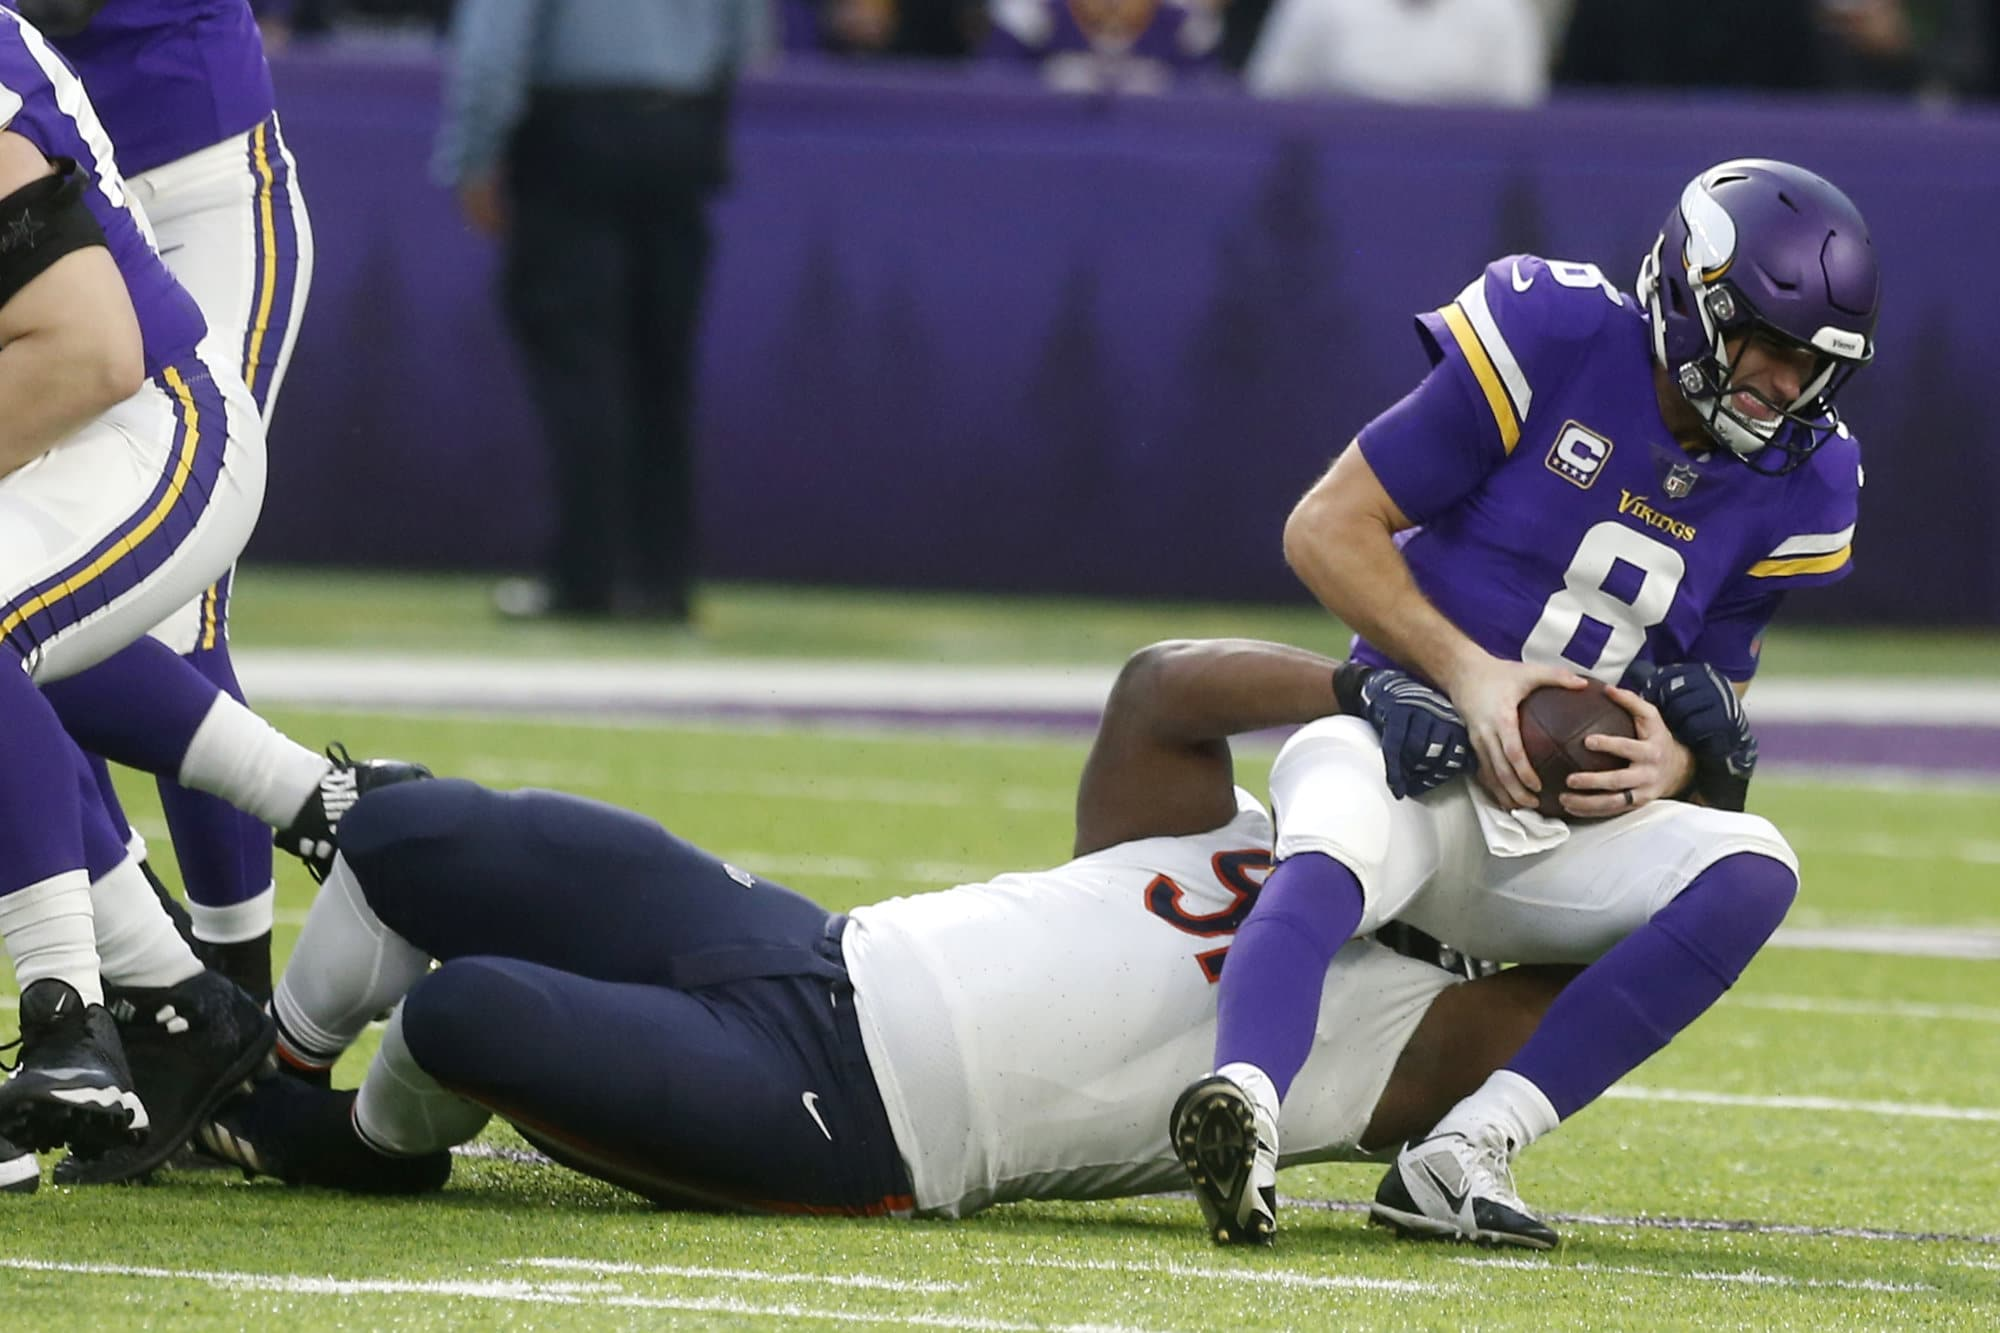 Minnesota Vikings quarterback Kirk Cousins (8) is sacked by Chicago Bears nose tackle Eddie Goldman during the first half of an NFL football game, Sunday, Dec. 30, 2018, in Minneapolis. (AP Photo/Jim Mone)